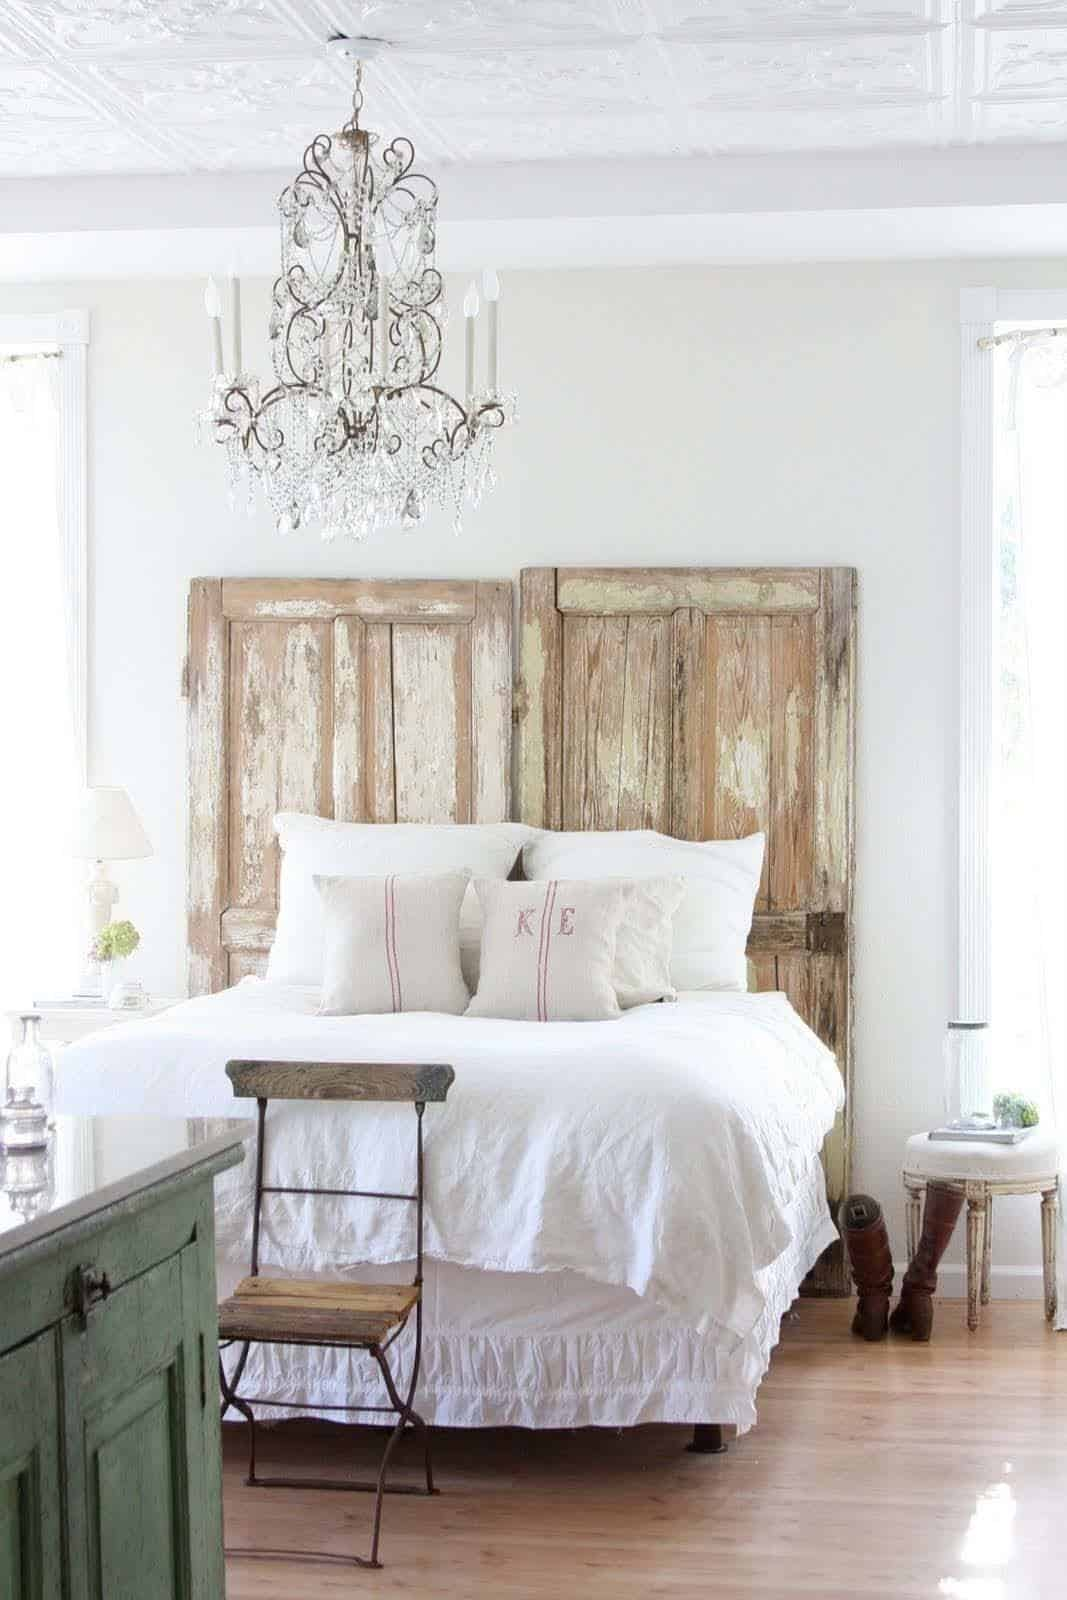 Bedroom Headboard Alternatives-09-1 Kindesign